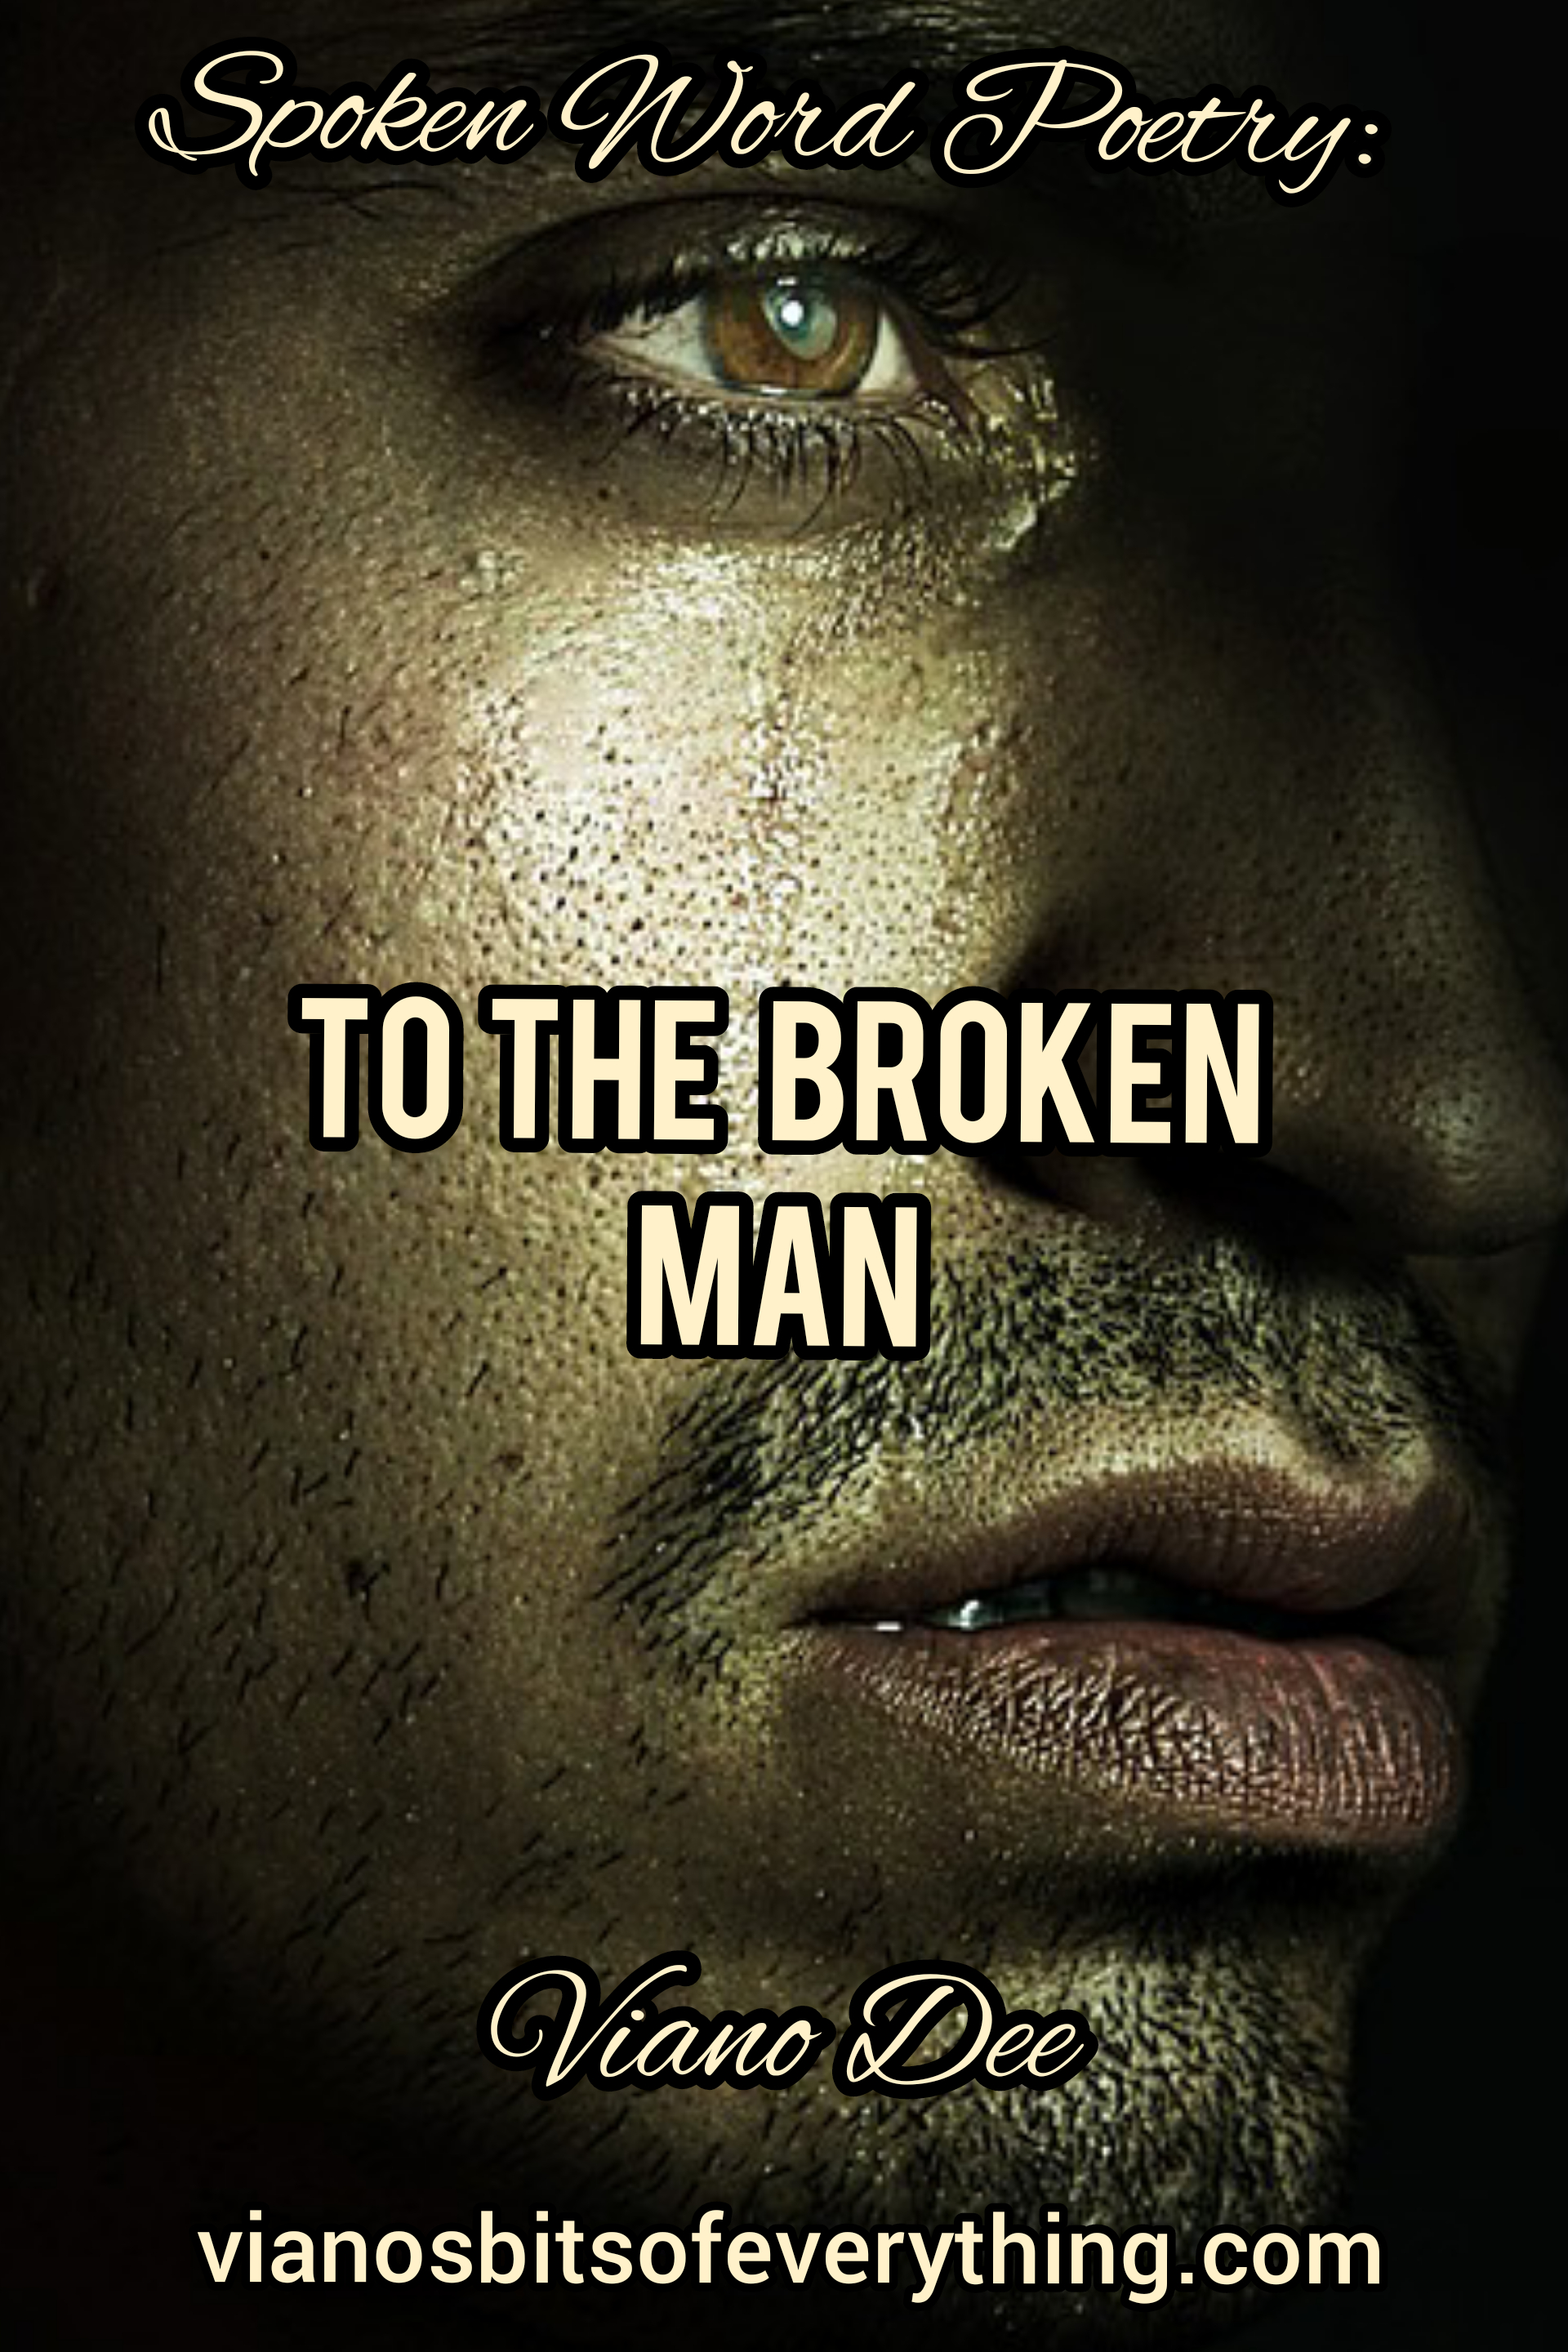 To The Broken Man: Spoken Word